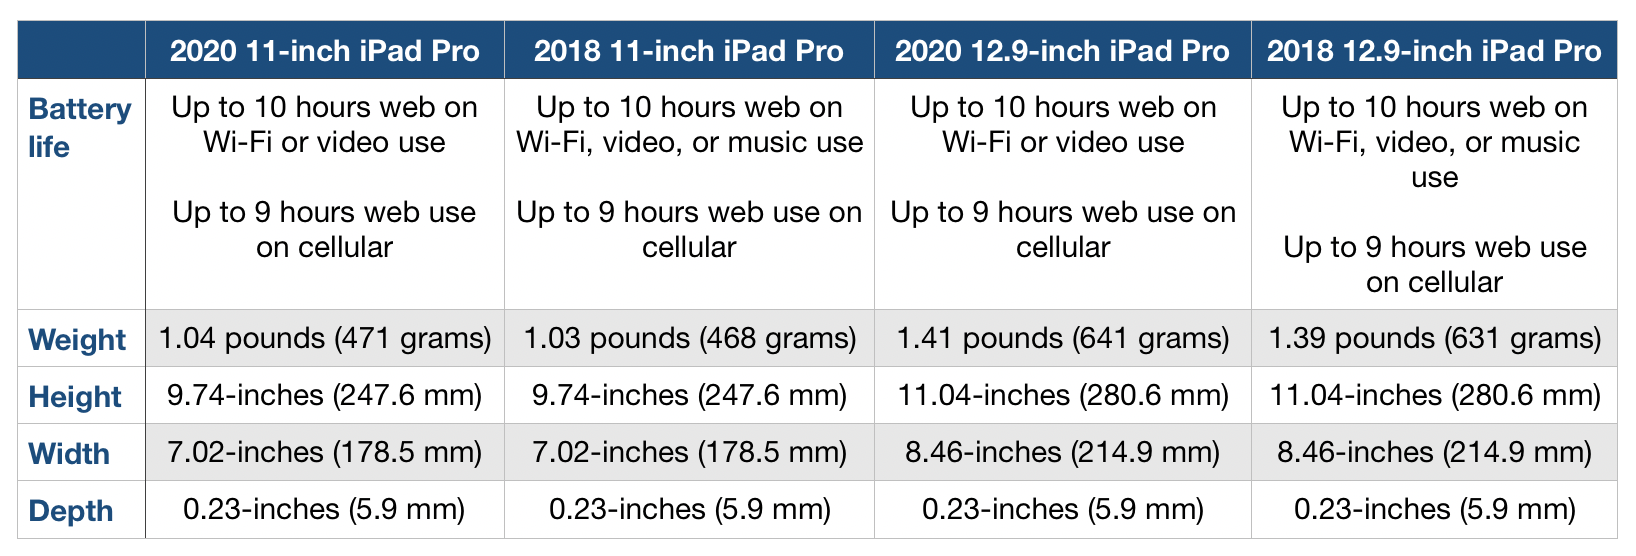 2020 new iPad Pro compare 2018 iPad Pro size, weight, battery specs